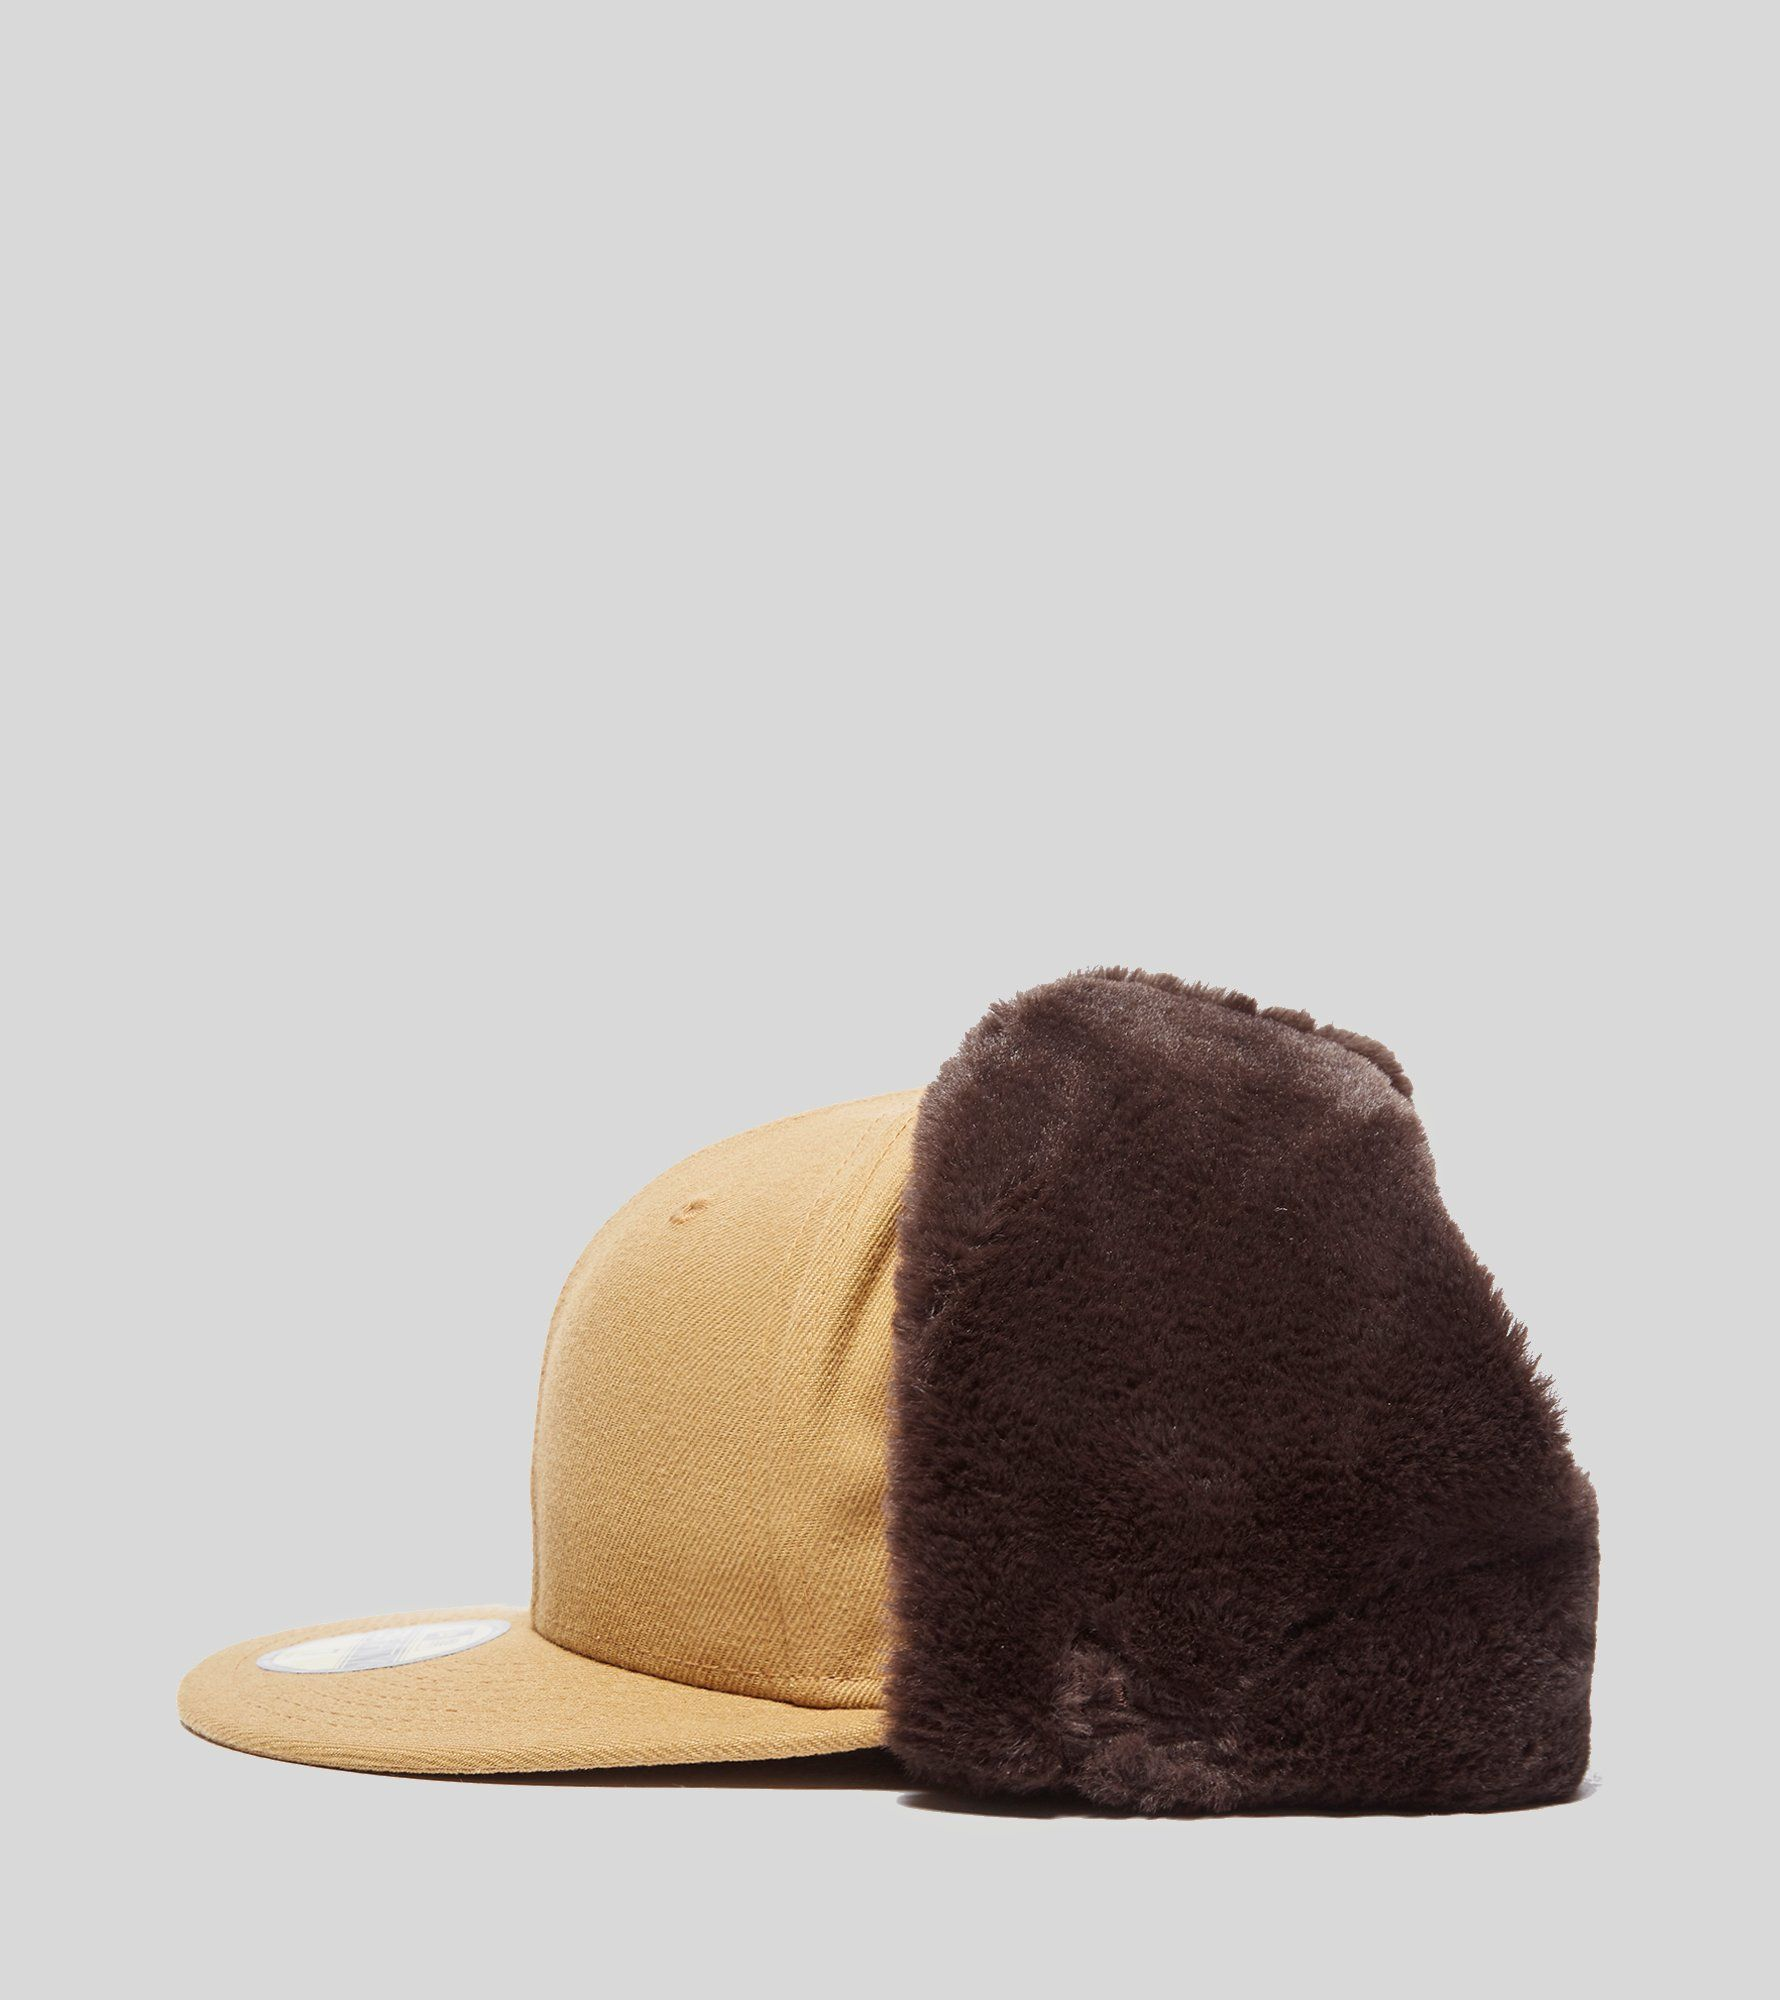 New Era 59FIFTY Dog Ear Cap